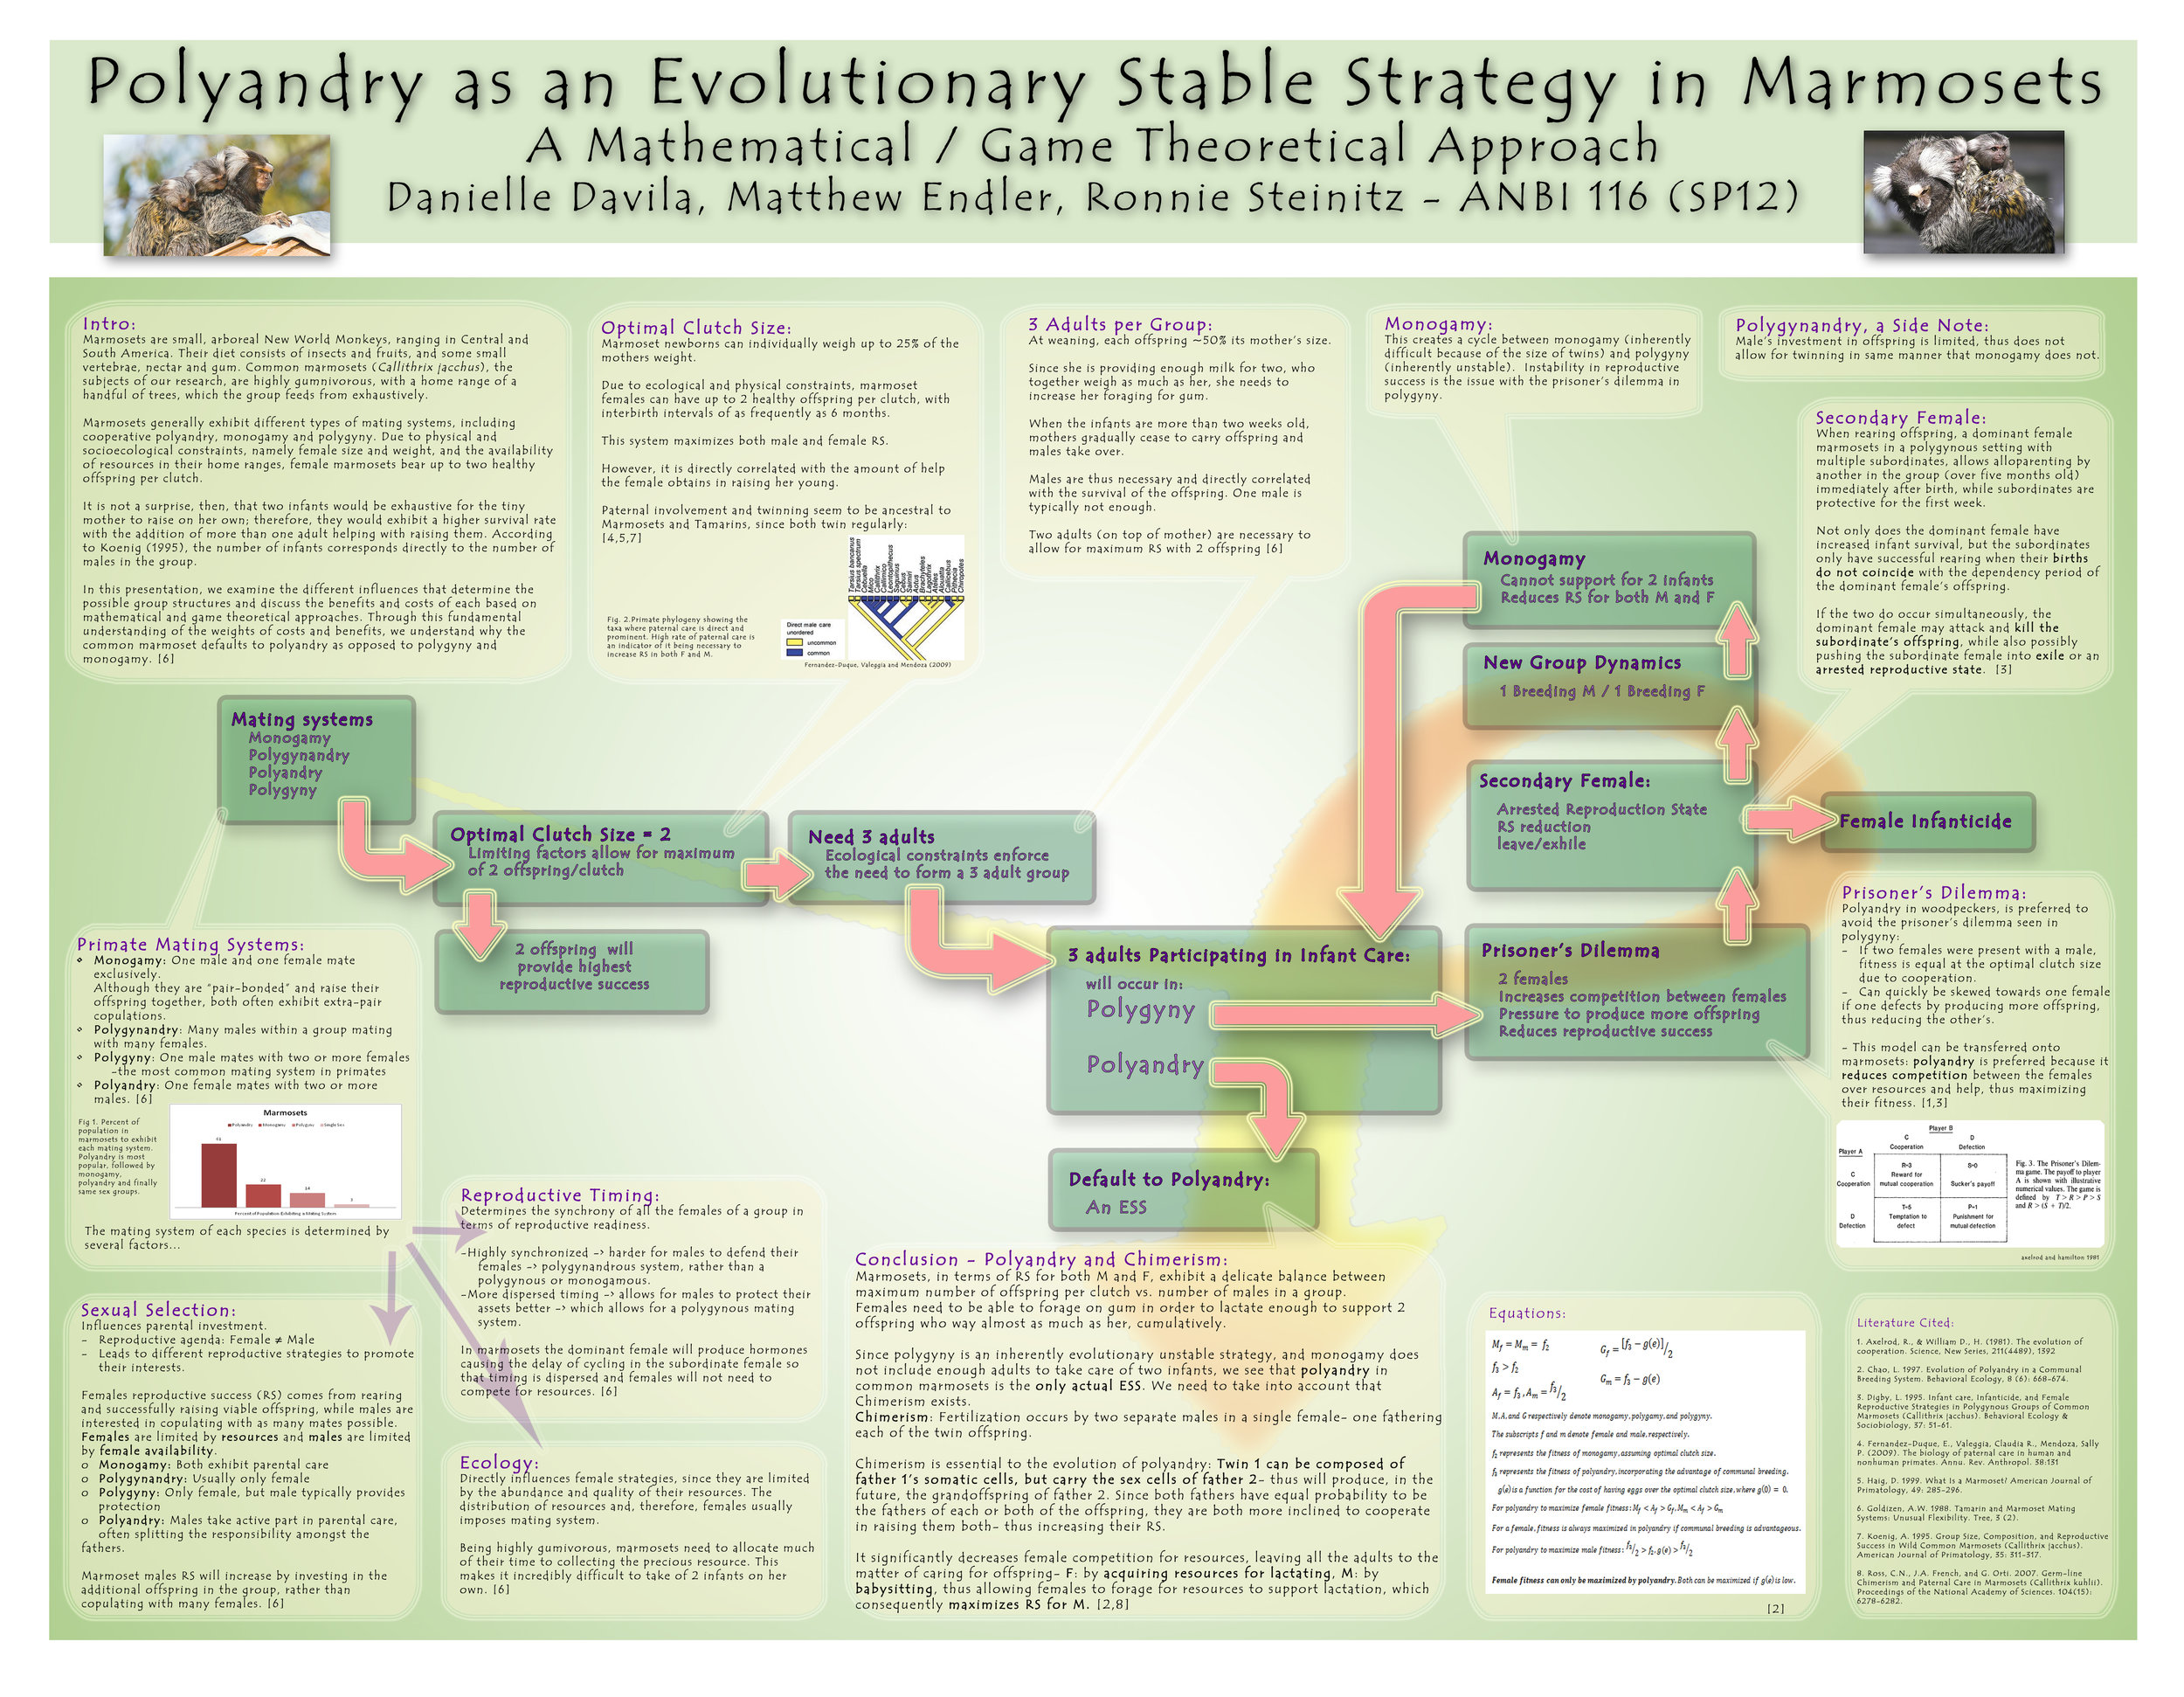 Mathematical Modeling of Primate Mating Systems - Primate Behavioral Ecology Research Showcase, Spring 2012